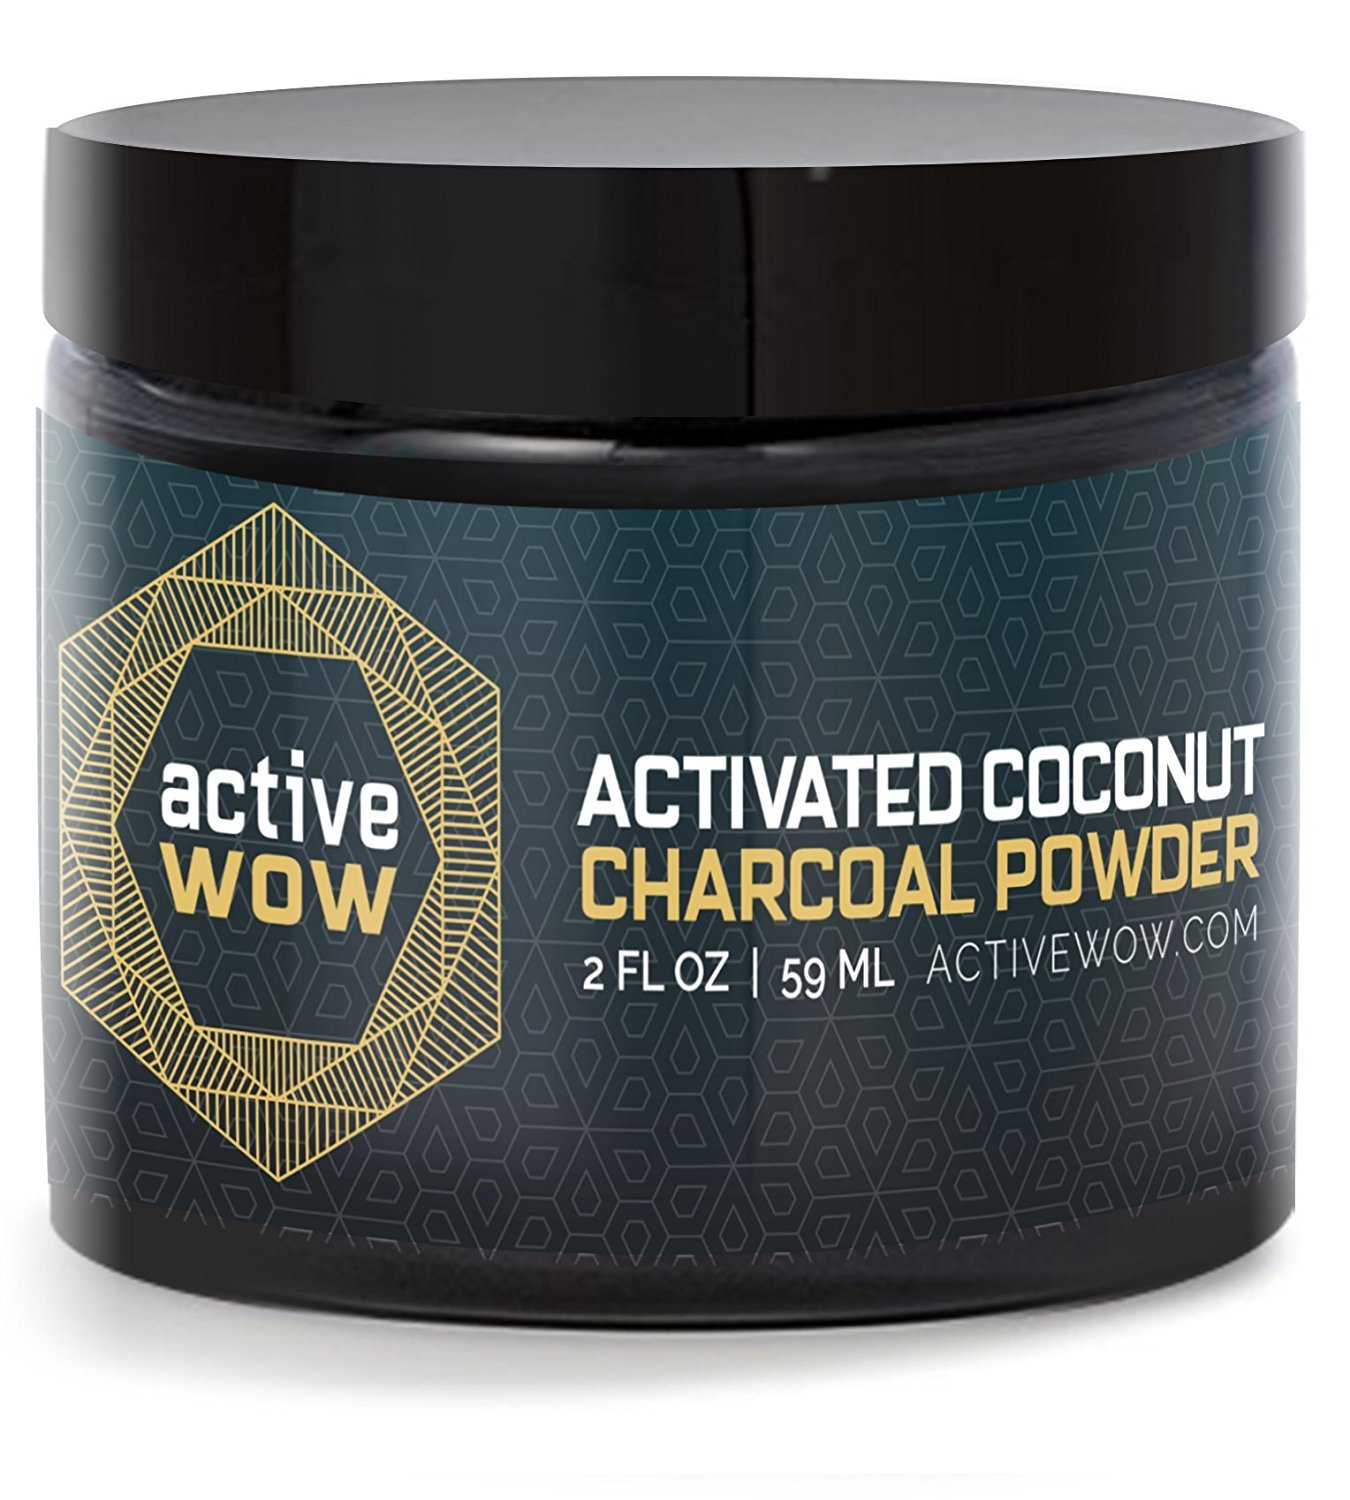 Active Wow Teeth Whitening Charcoal Powder Natural AW_CPNTW